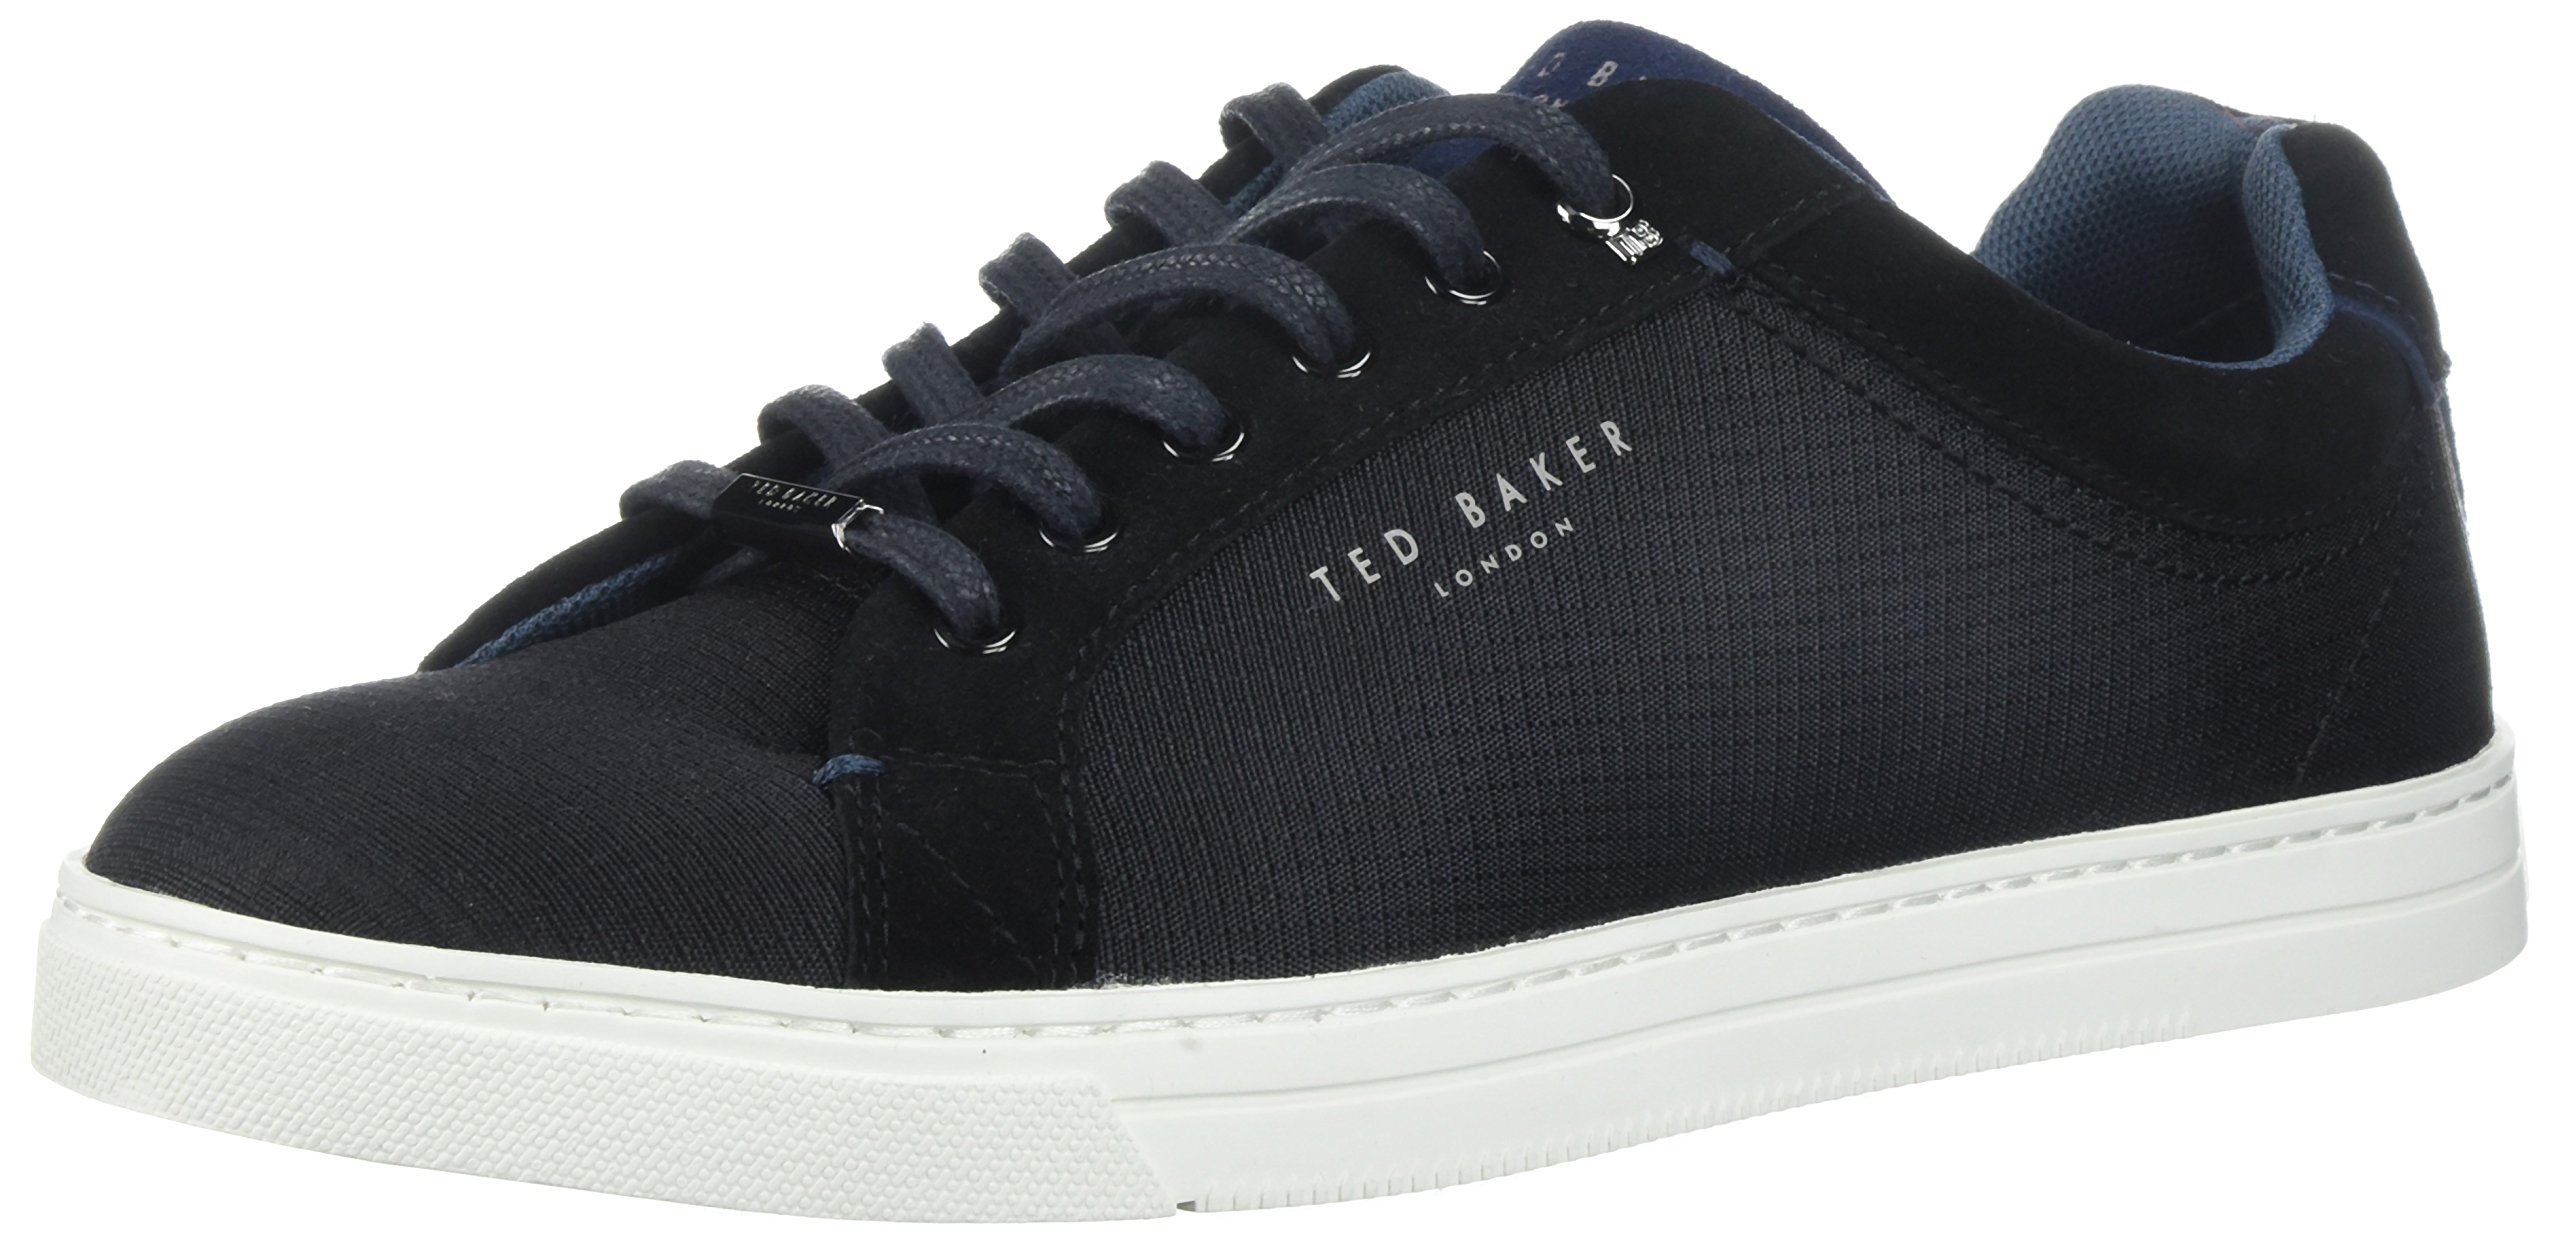 Ted Baker Men's Klemes Sneaker, Black, 14 D(M) US